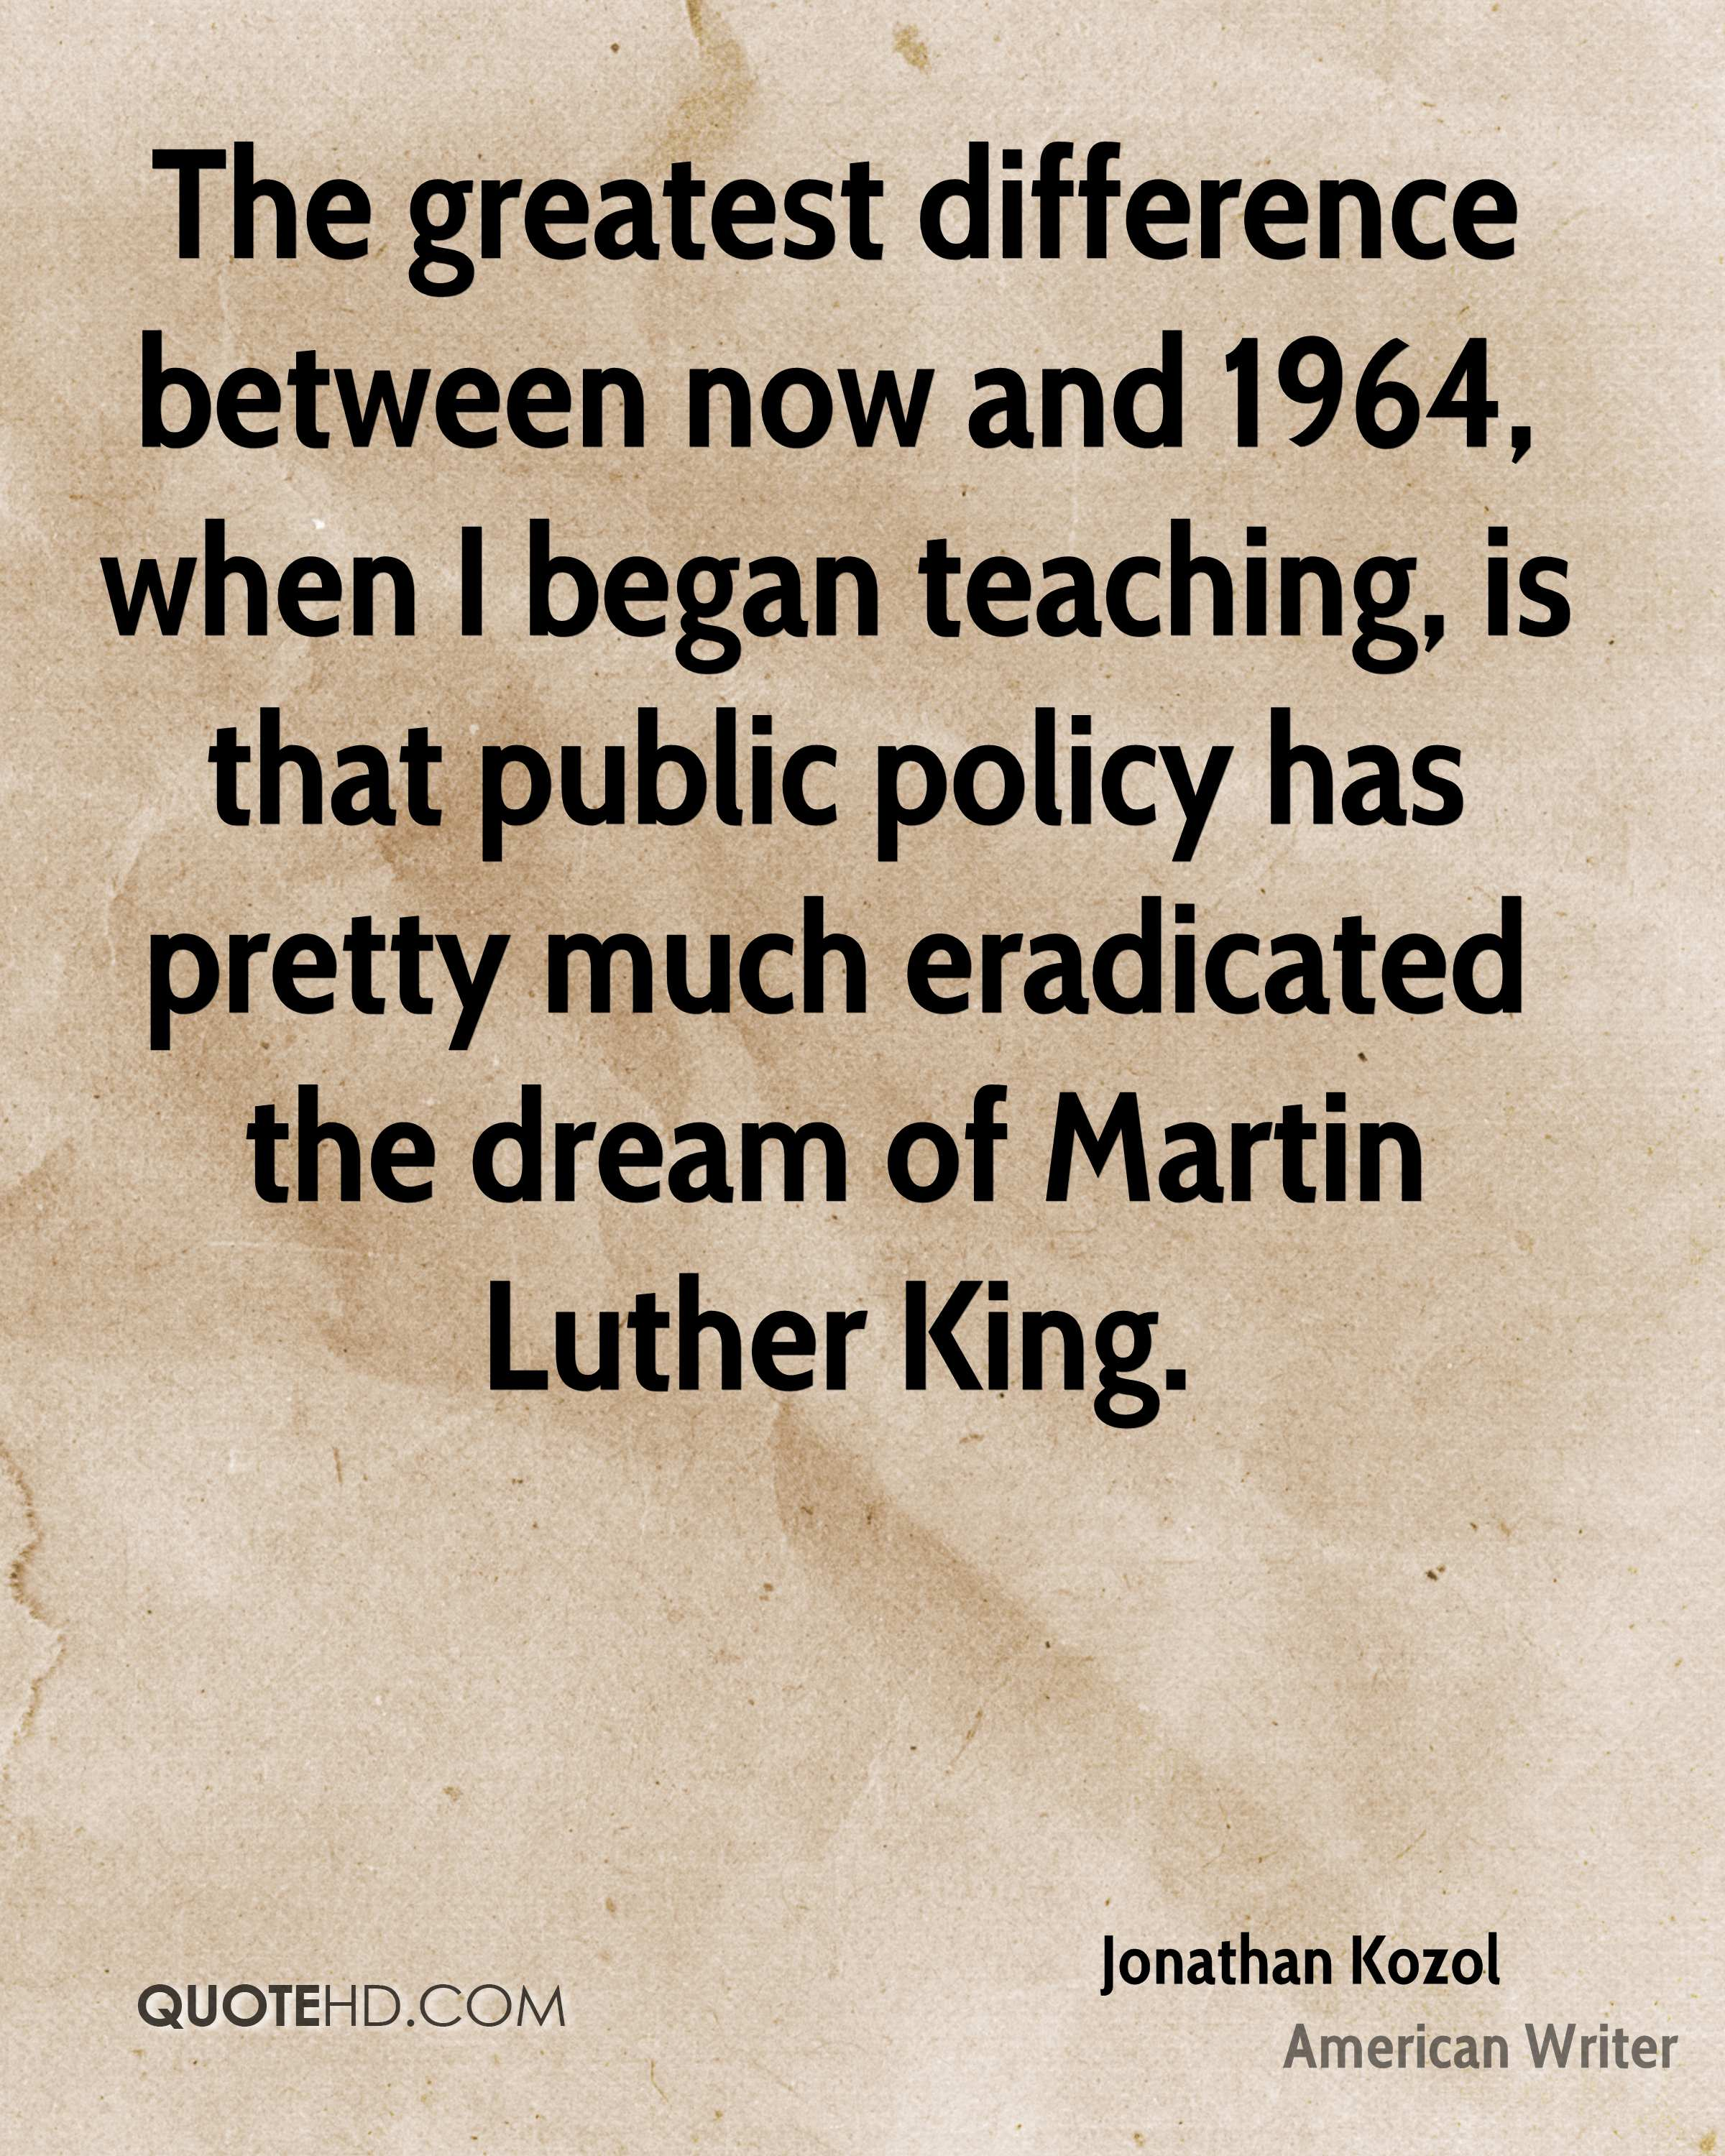 The greatest difference between now and 1964, when I began teaching, is that public policy has pretty much eradicated the dream of Martin Luther King.